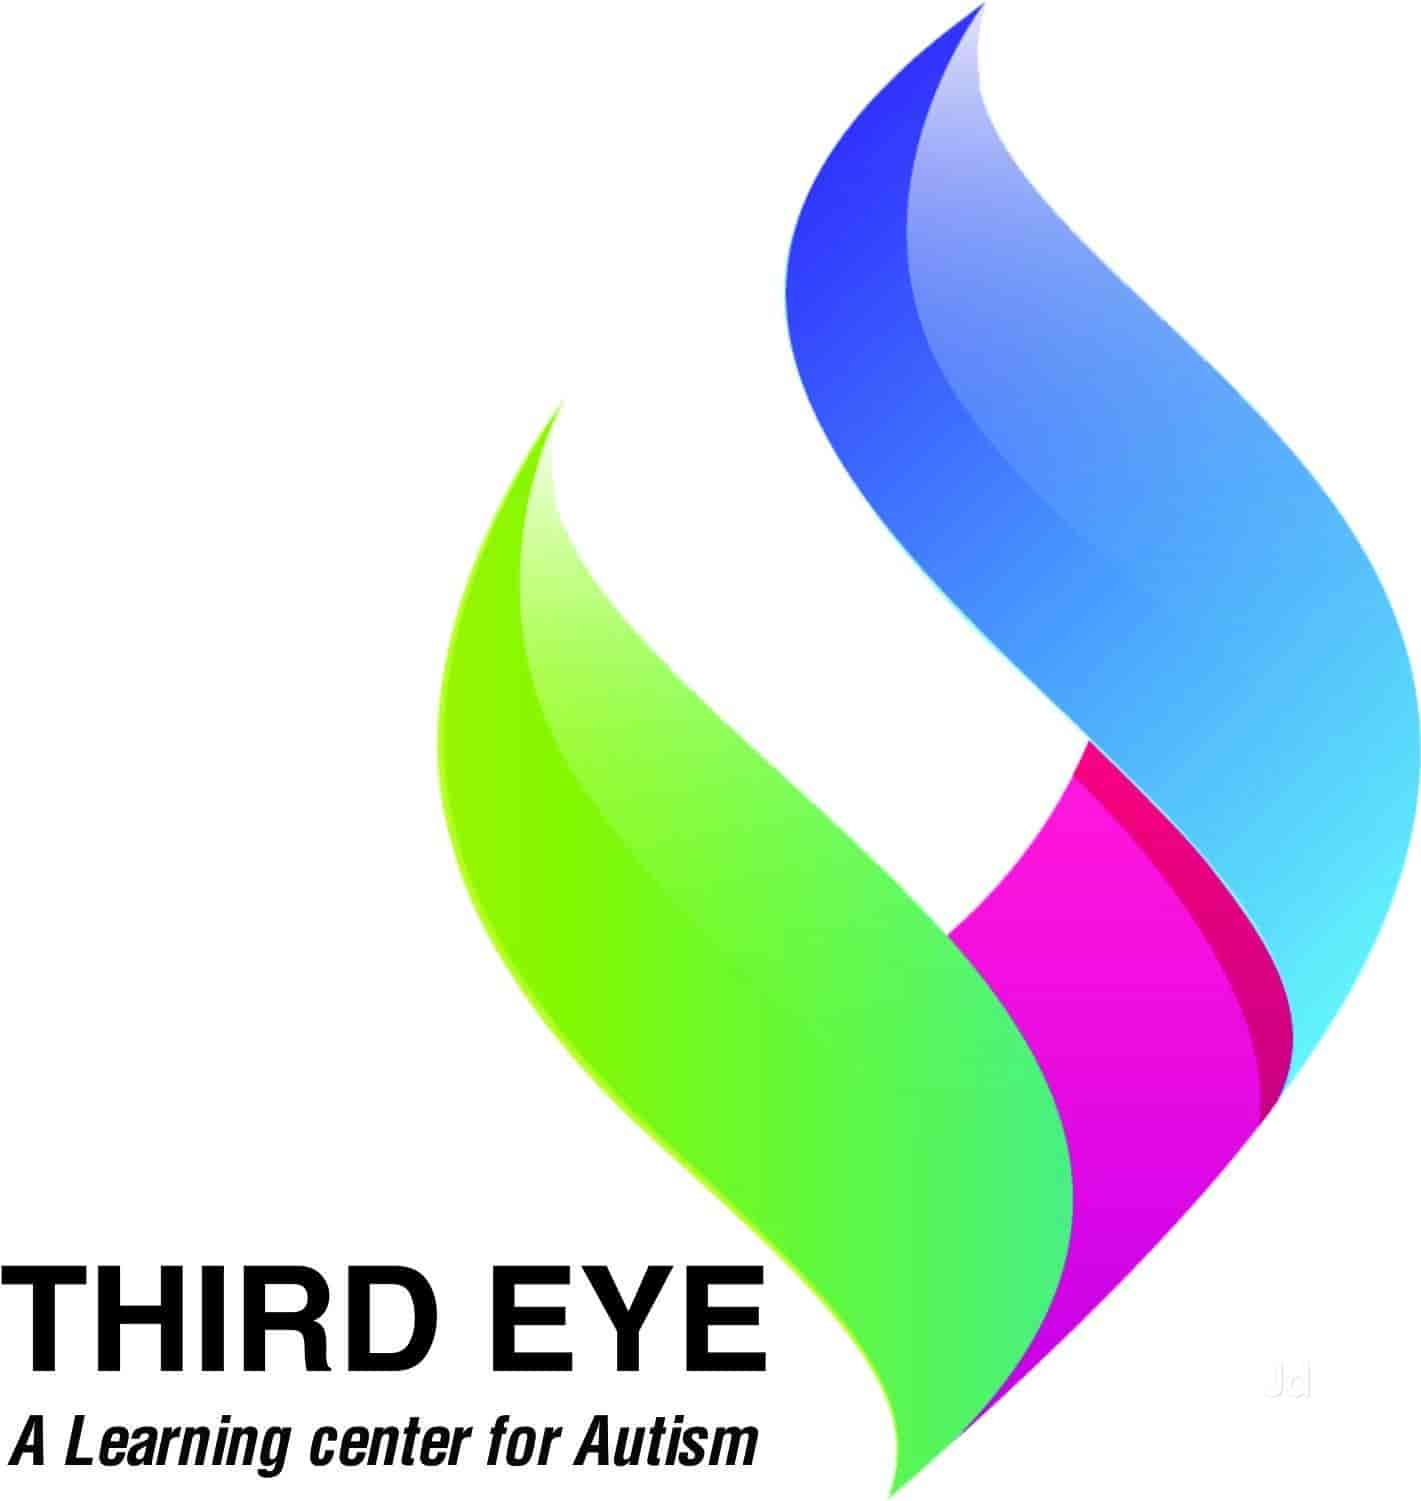 Sharanalayam third eye a learning center for autism vadasithur sharanalayam third eye a learning center for autism vadasithur special schools in coimbatore justdial biocorpaavc Gallery